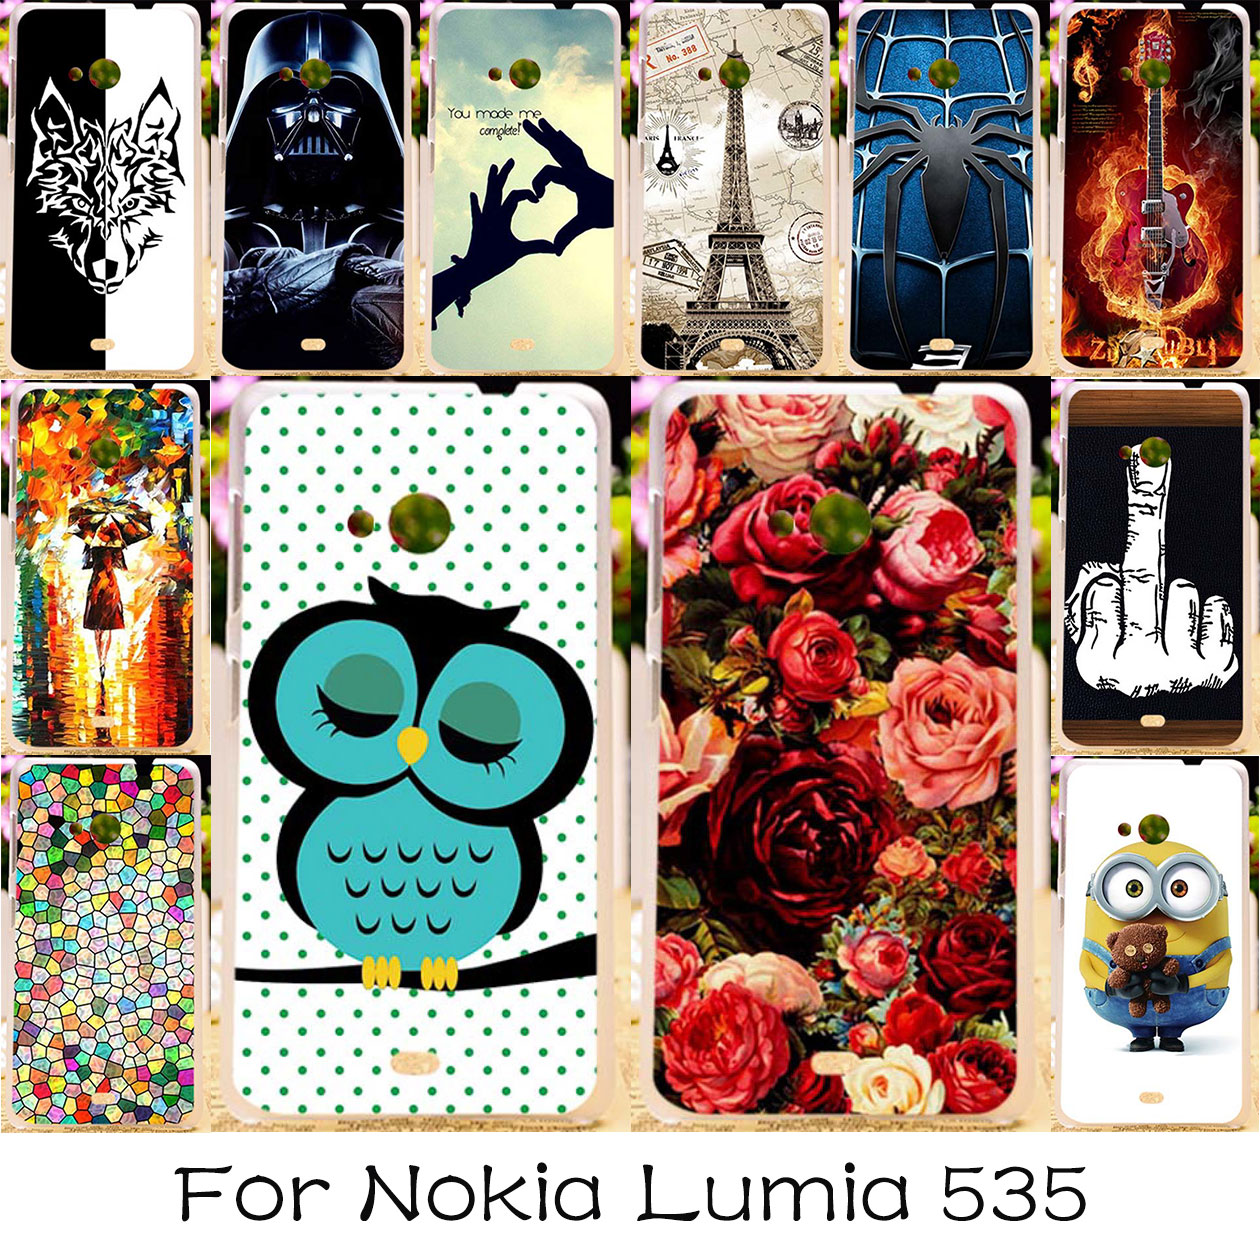 Galleria fotografica TAOYUNXI Phone Case For Lumia 535 Cases Silicone DIY Painted Patterned <font><b>Cover</b></font> For Microsoft <font><b>Nokia</b></font> Lumia 535 <font><b>Covers</b></font> Skin Bag Shell